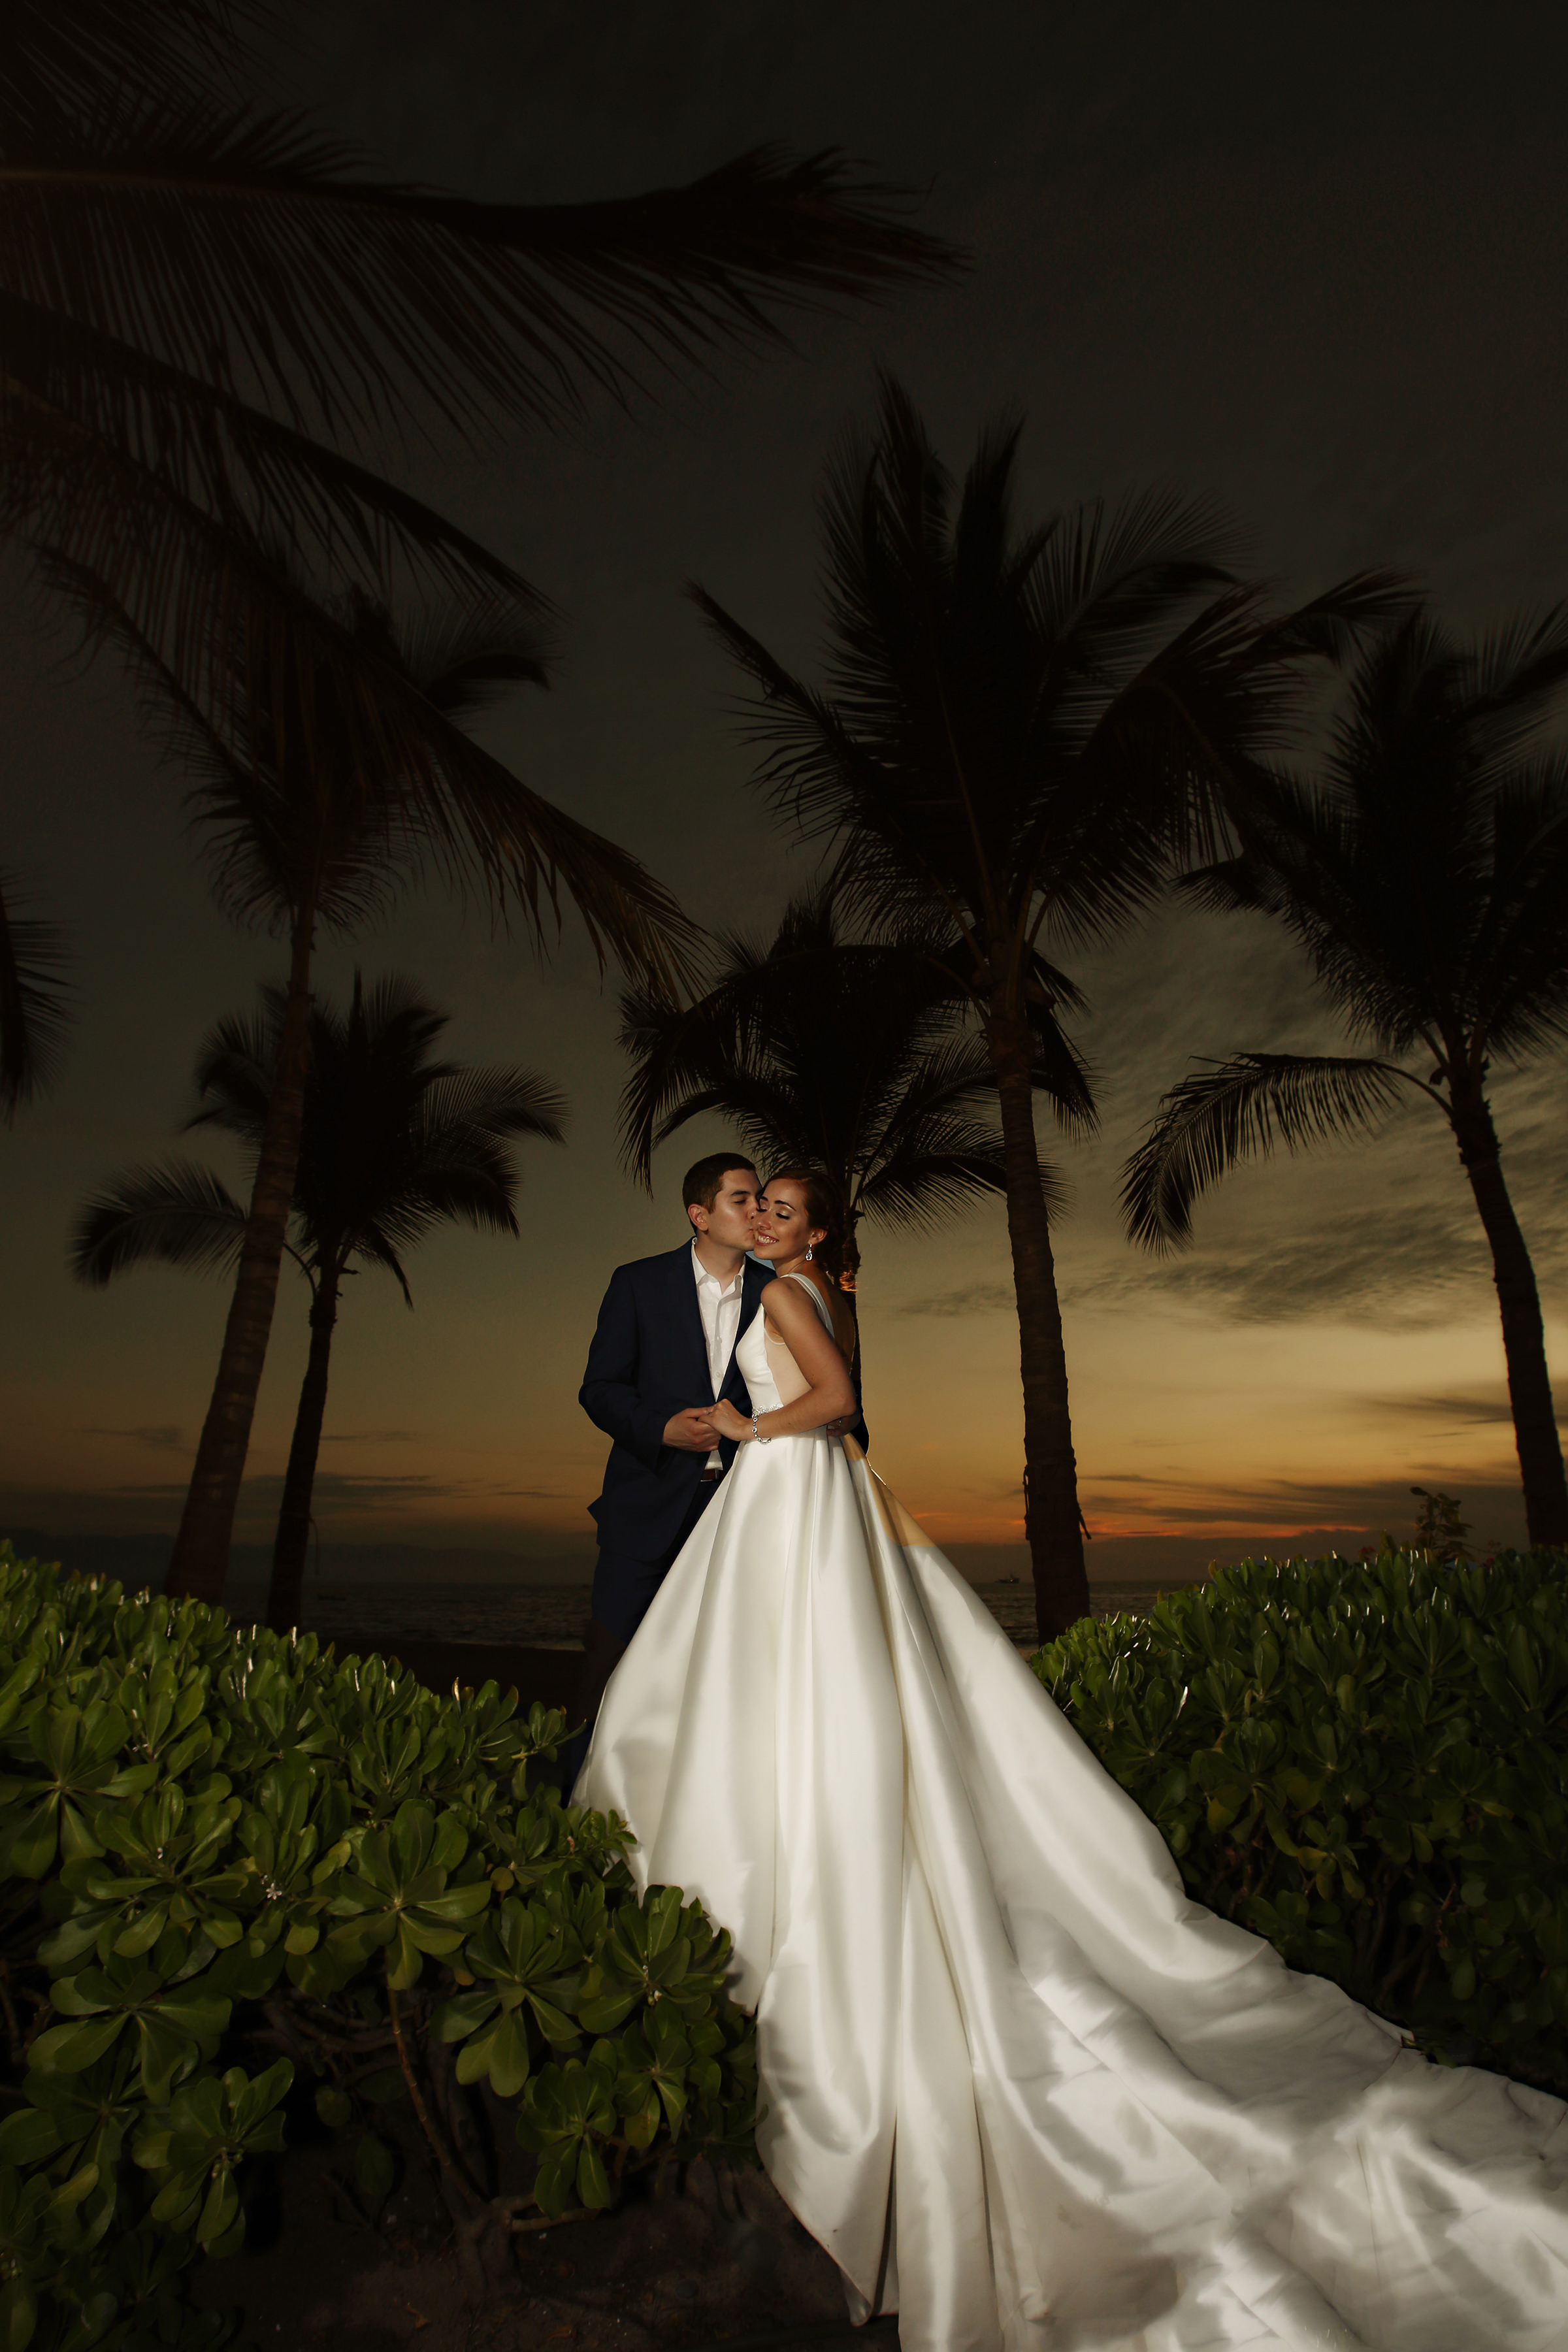 Bride and groom against tropical sunset - photo by Kenny Kim Photography